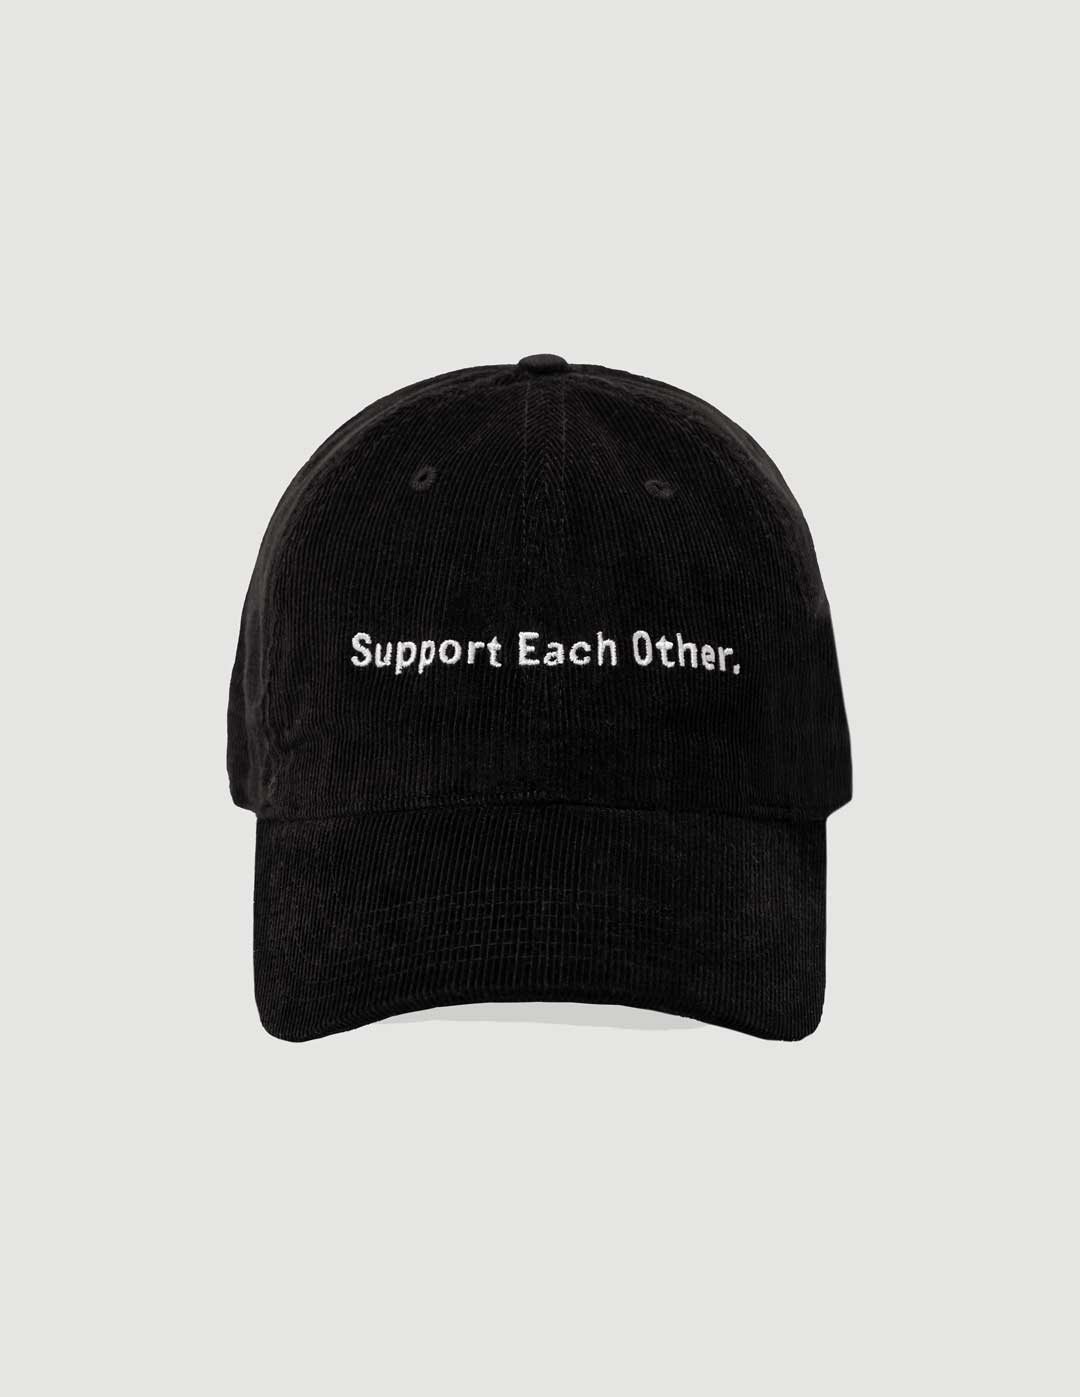 Support Each Other Cap